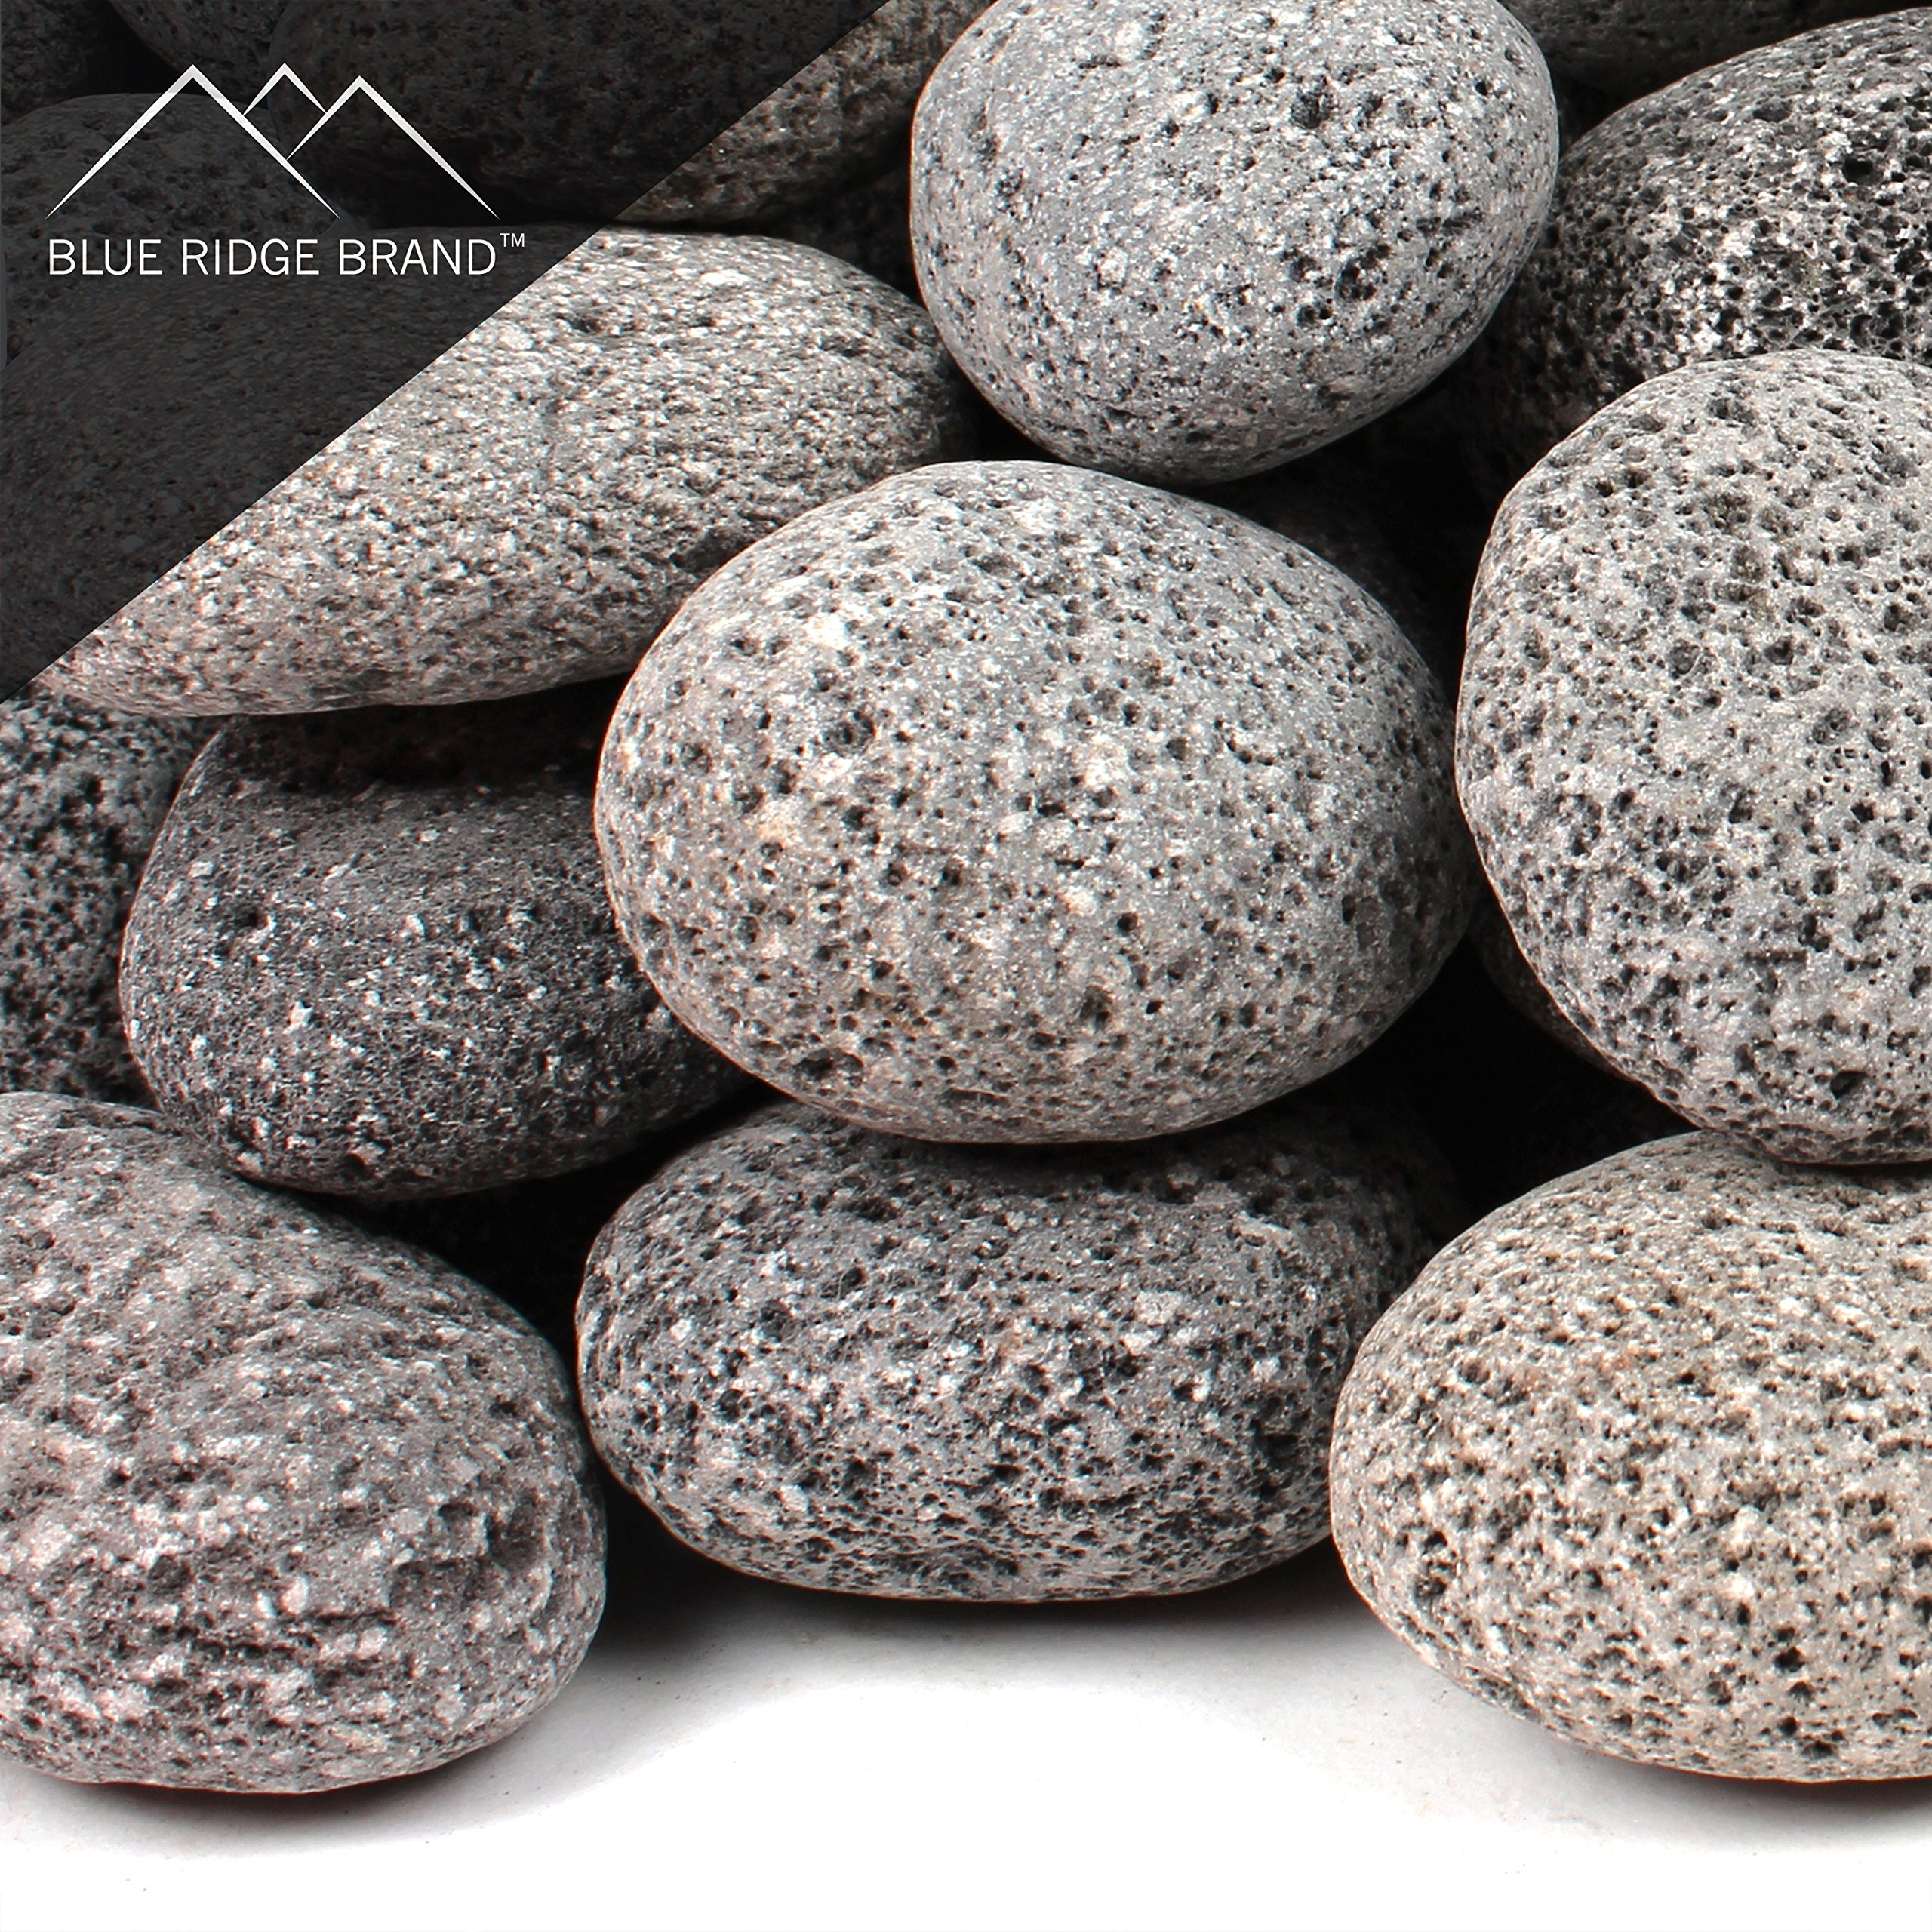 Blue Ridge Brand trade; Lava Rock - 25-Pound Tumbled Lava Stones for Fire Pit - 2'' Black/Gray Lava Pebbles - Fire Glass Substitute - Landscaping Rocks